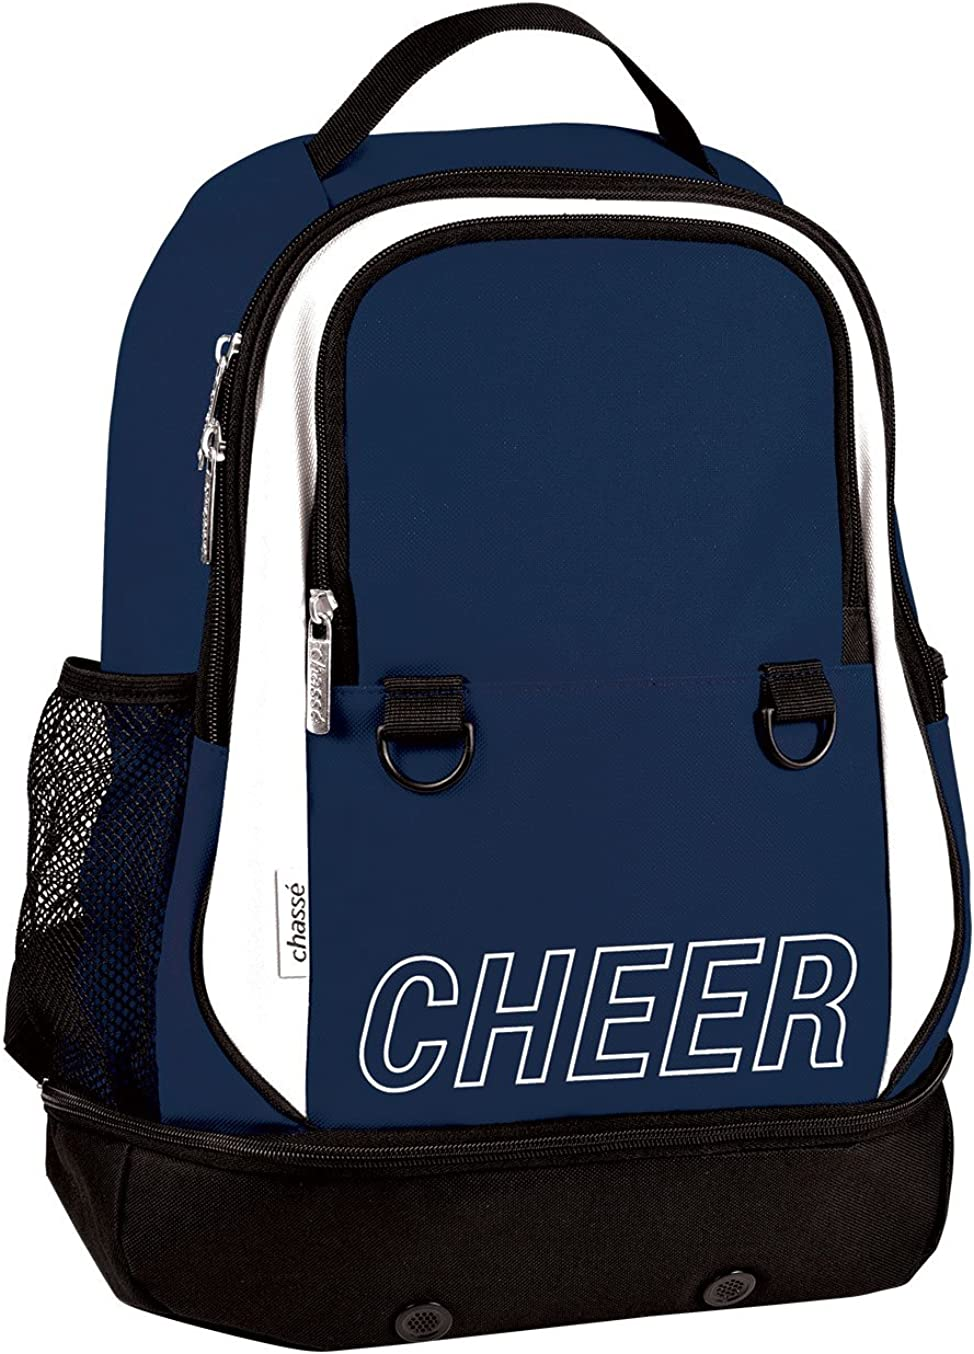 Chass Challenger Backpack